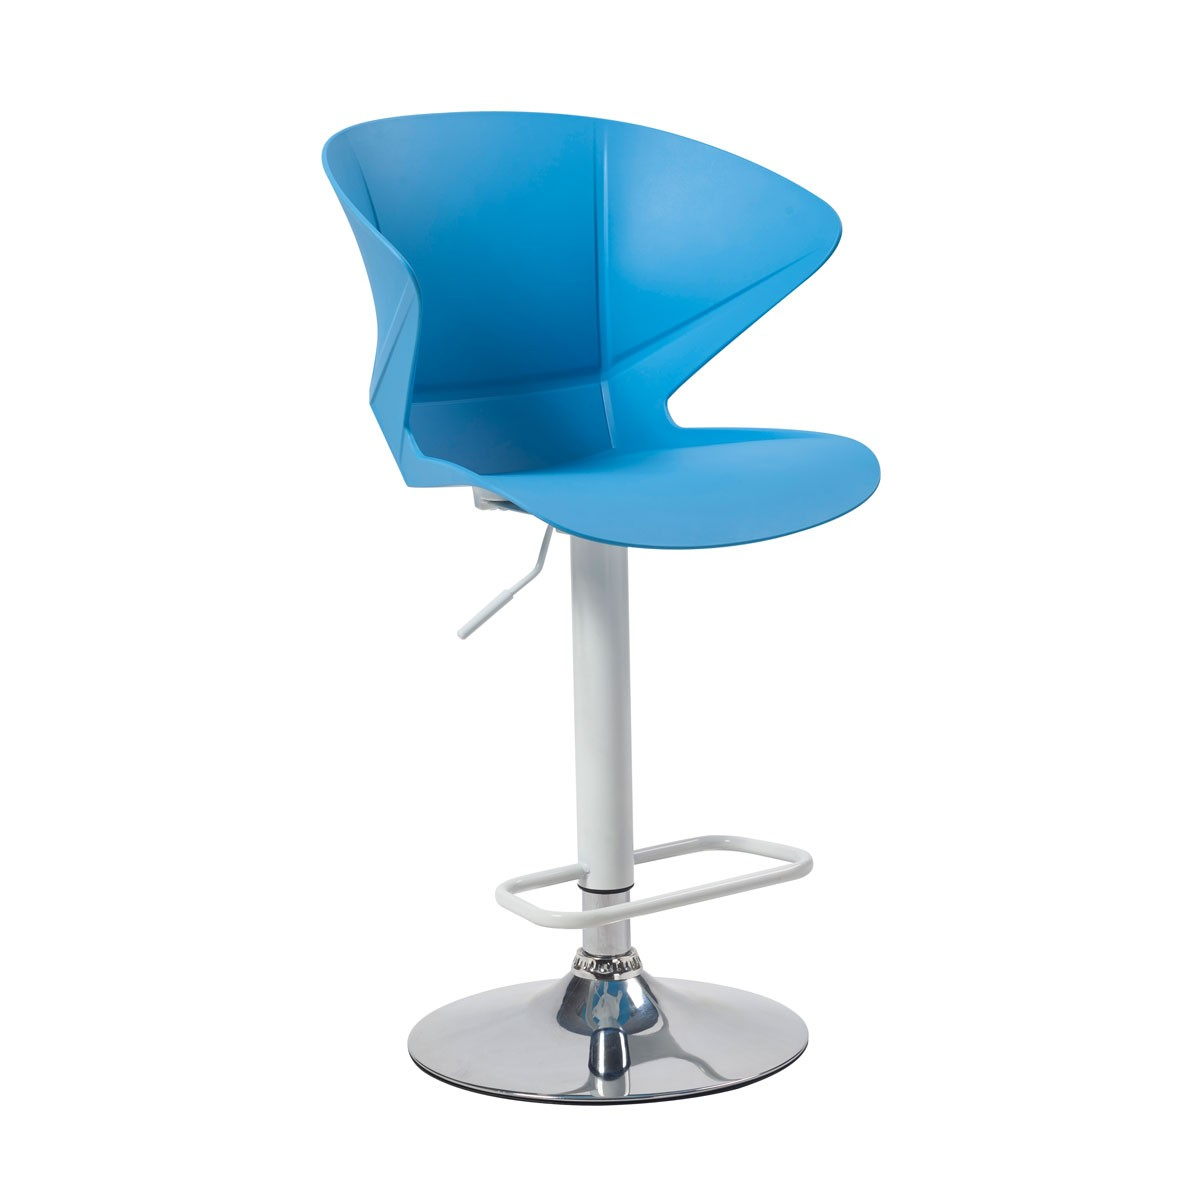 Blue Adjustable Height Swivel Bar Stool with Round Base - Set of 2 (YMG-9802)